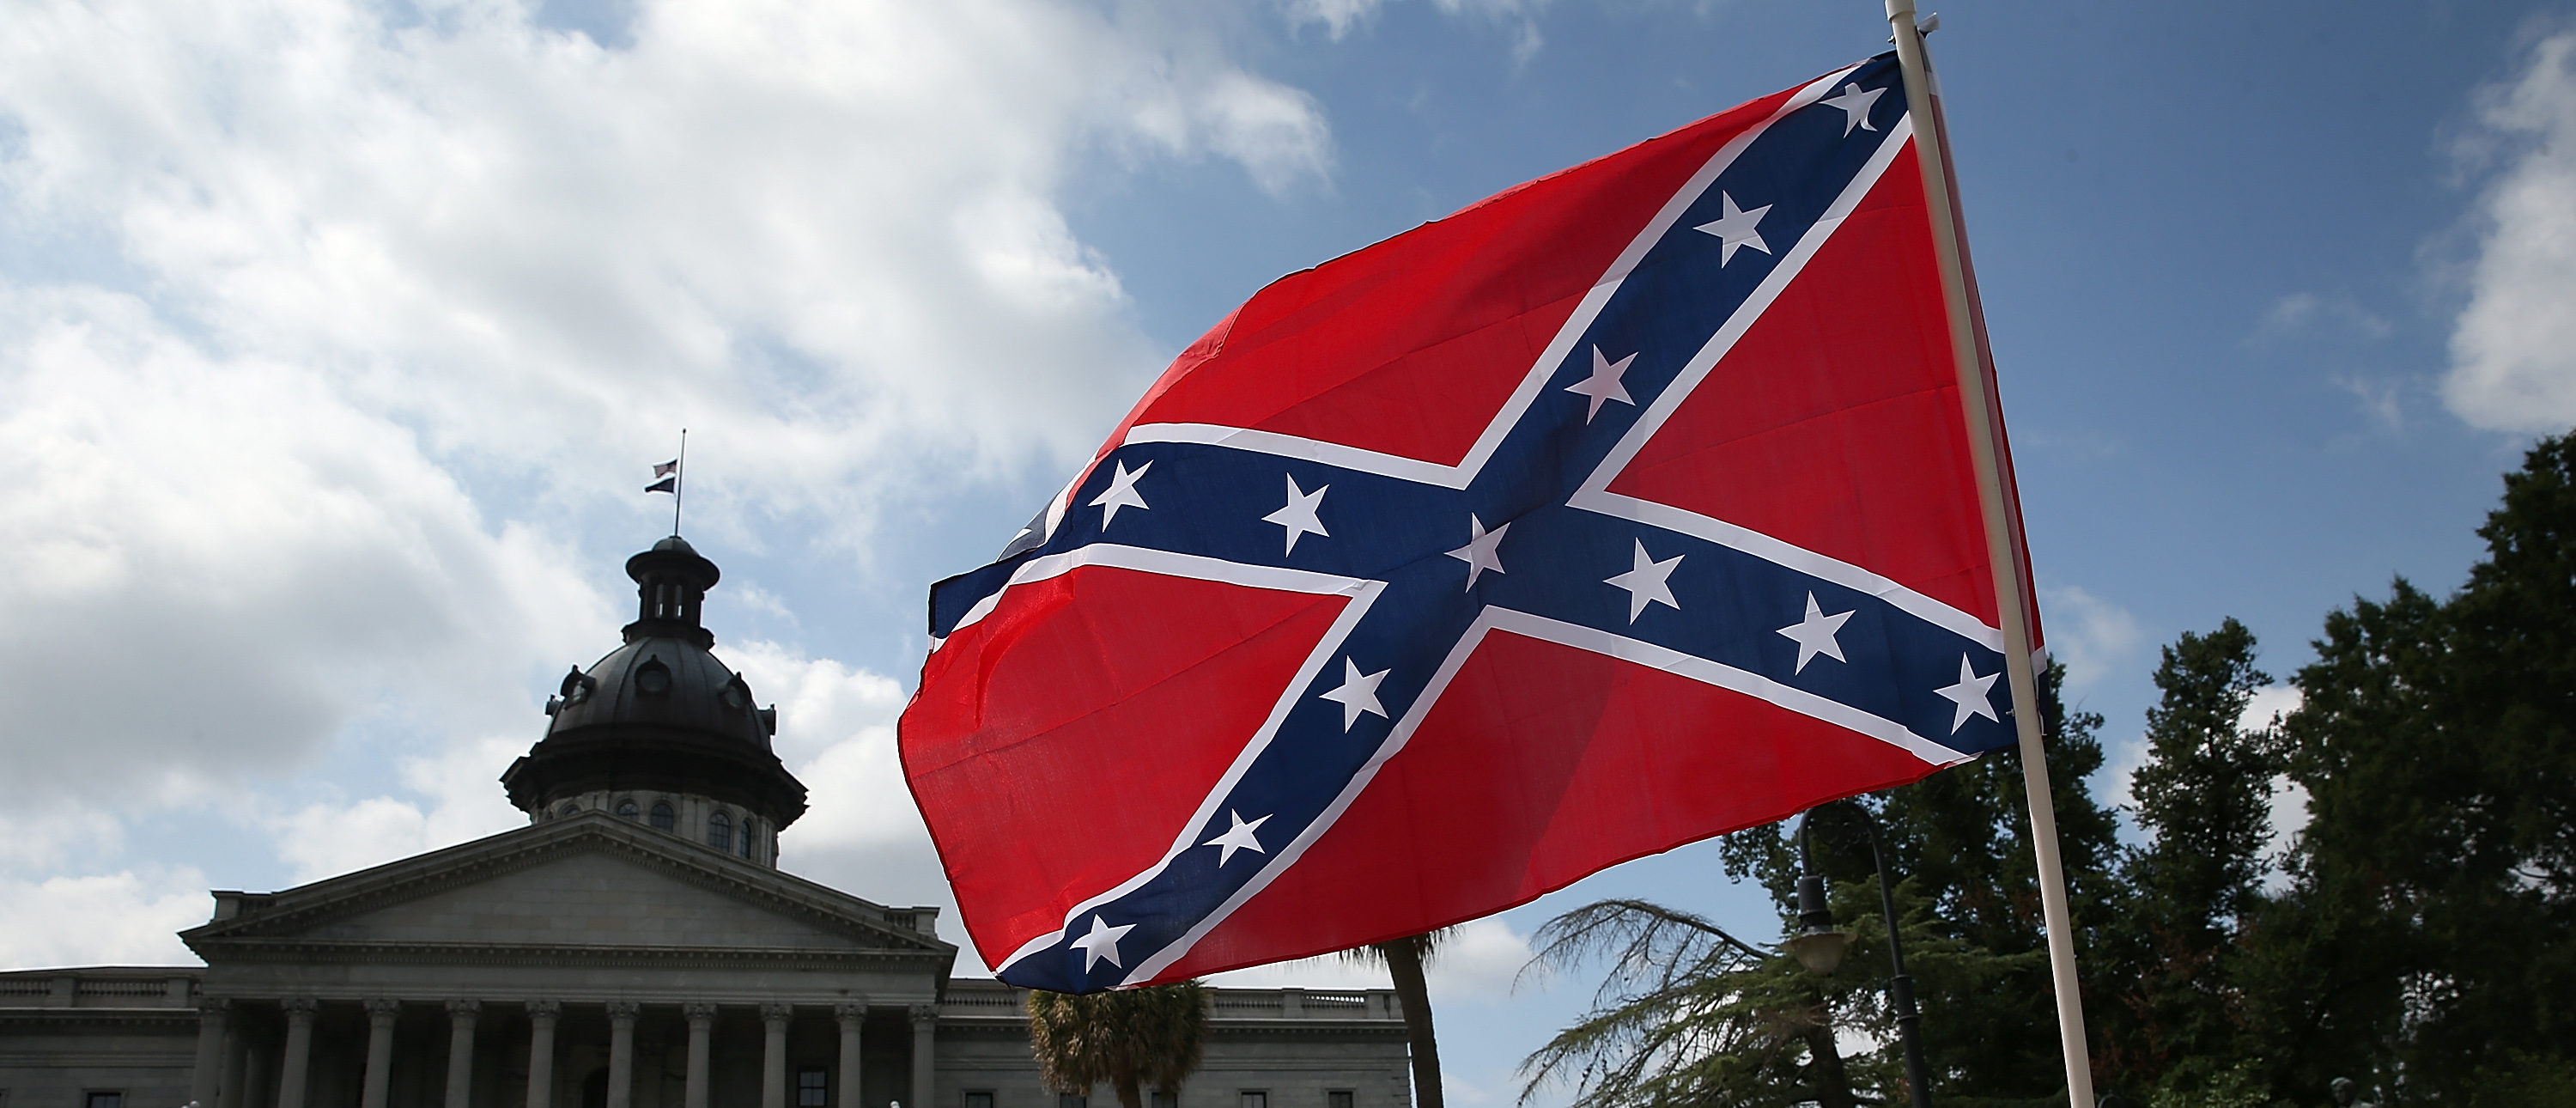 Pentagon Effectively Bans Confederate Flags On Military Property, Skirts Around Trump's Objections